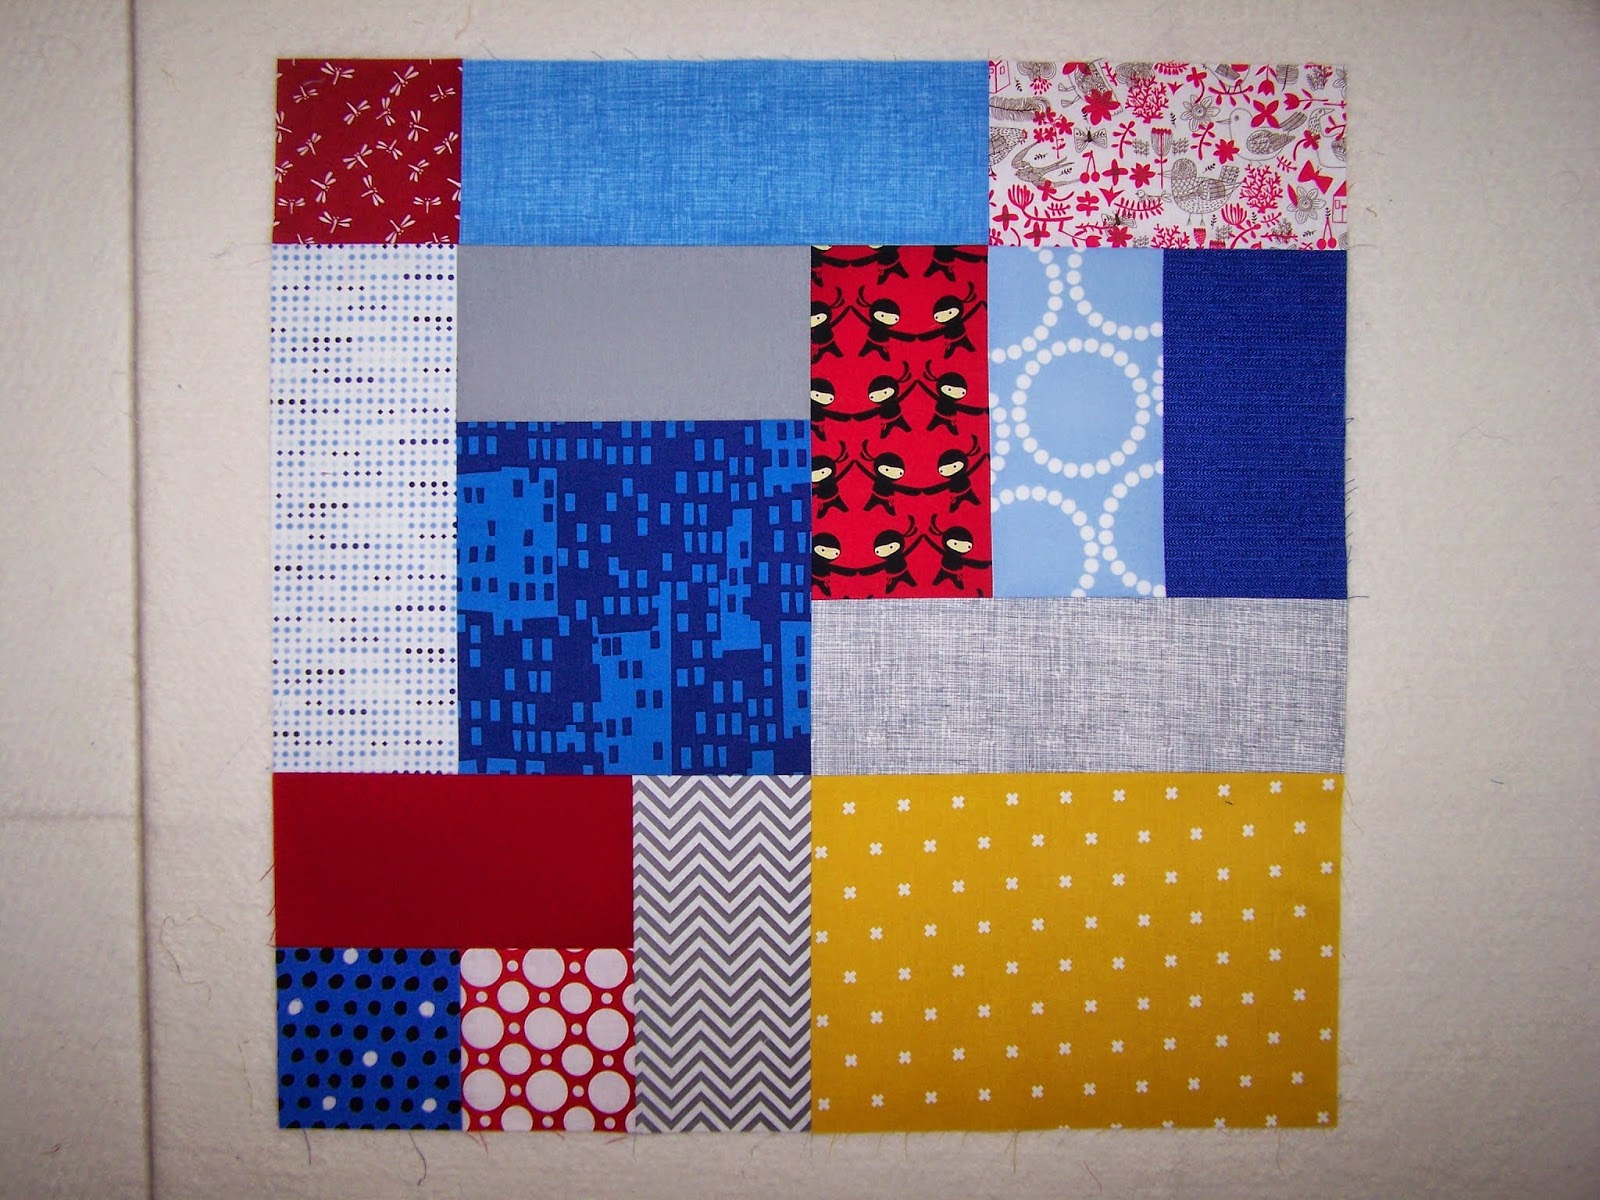 sunlight in winter quilts: One Big Block